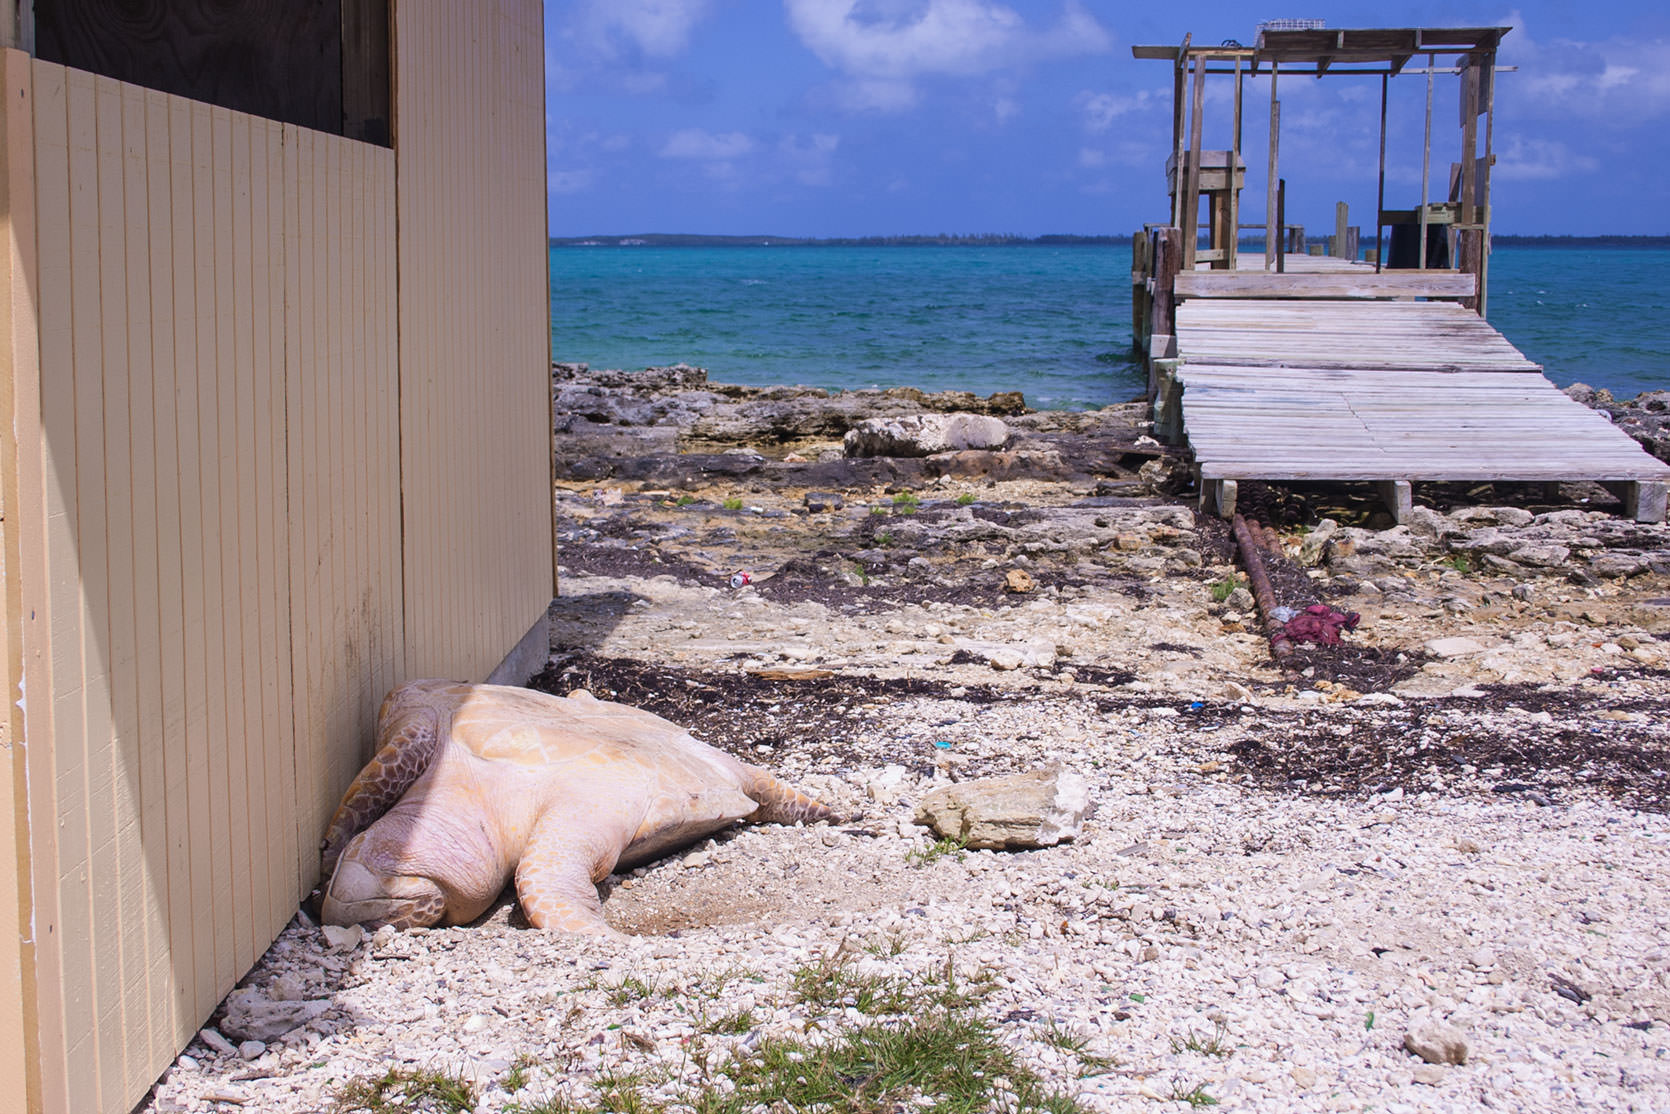 Green Turtle slaughtered for its meat and shell in Abaco.